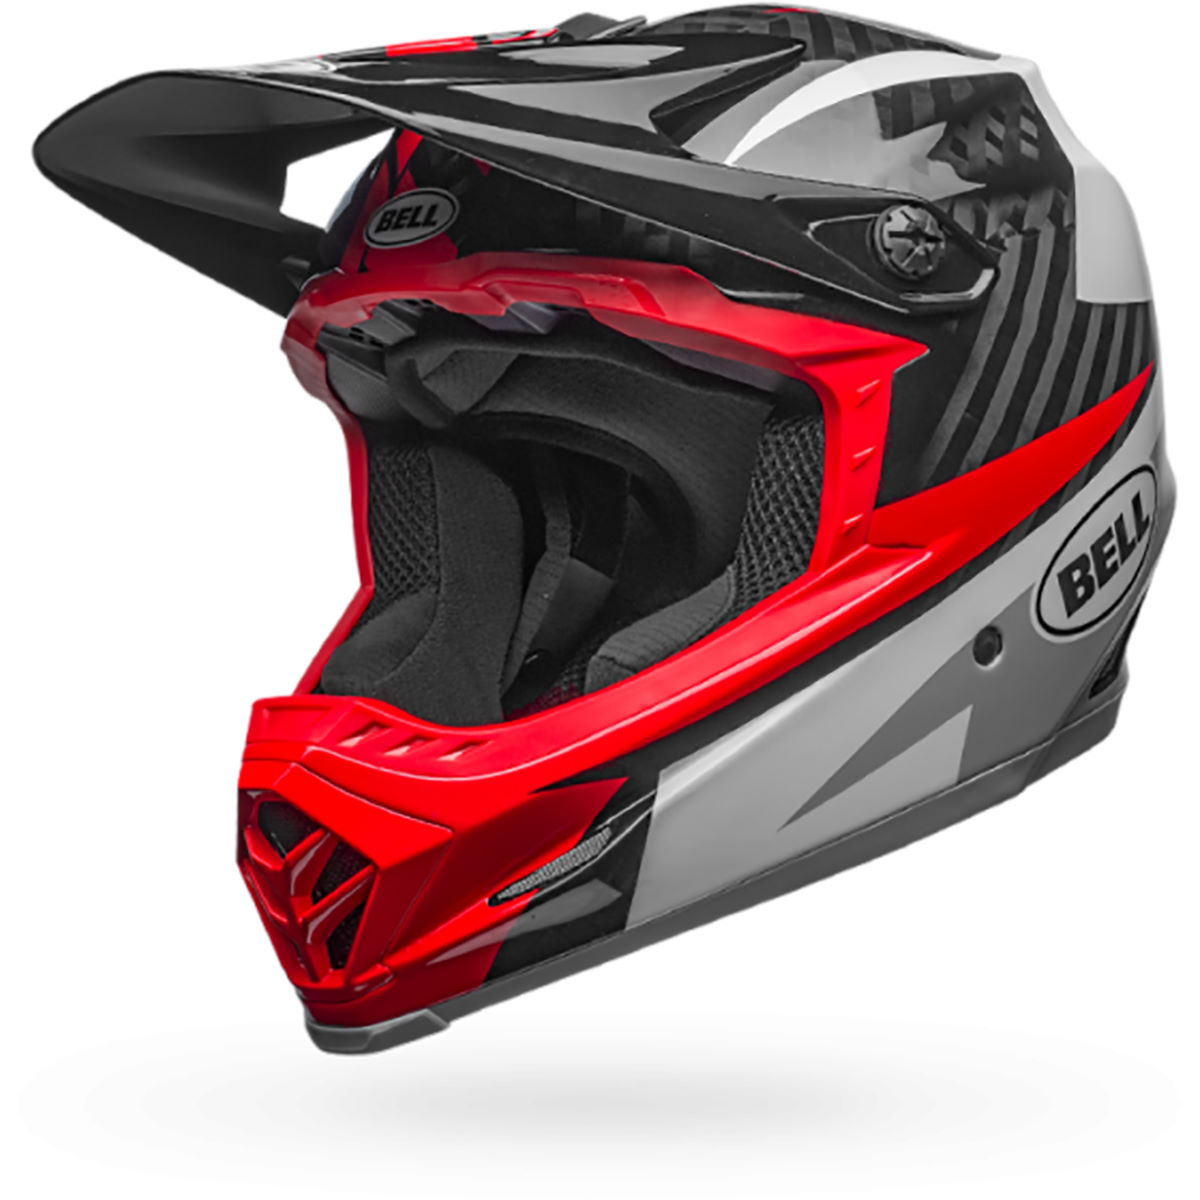 Casque VTT Bell Full-9 - XL/XXL Gloss White/Black/Hi